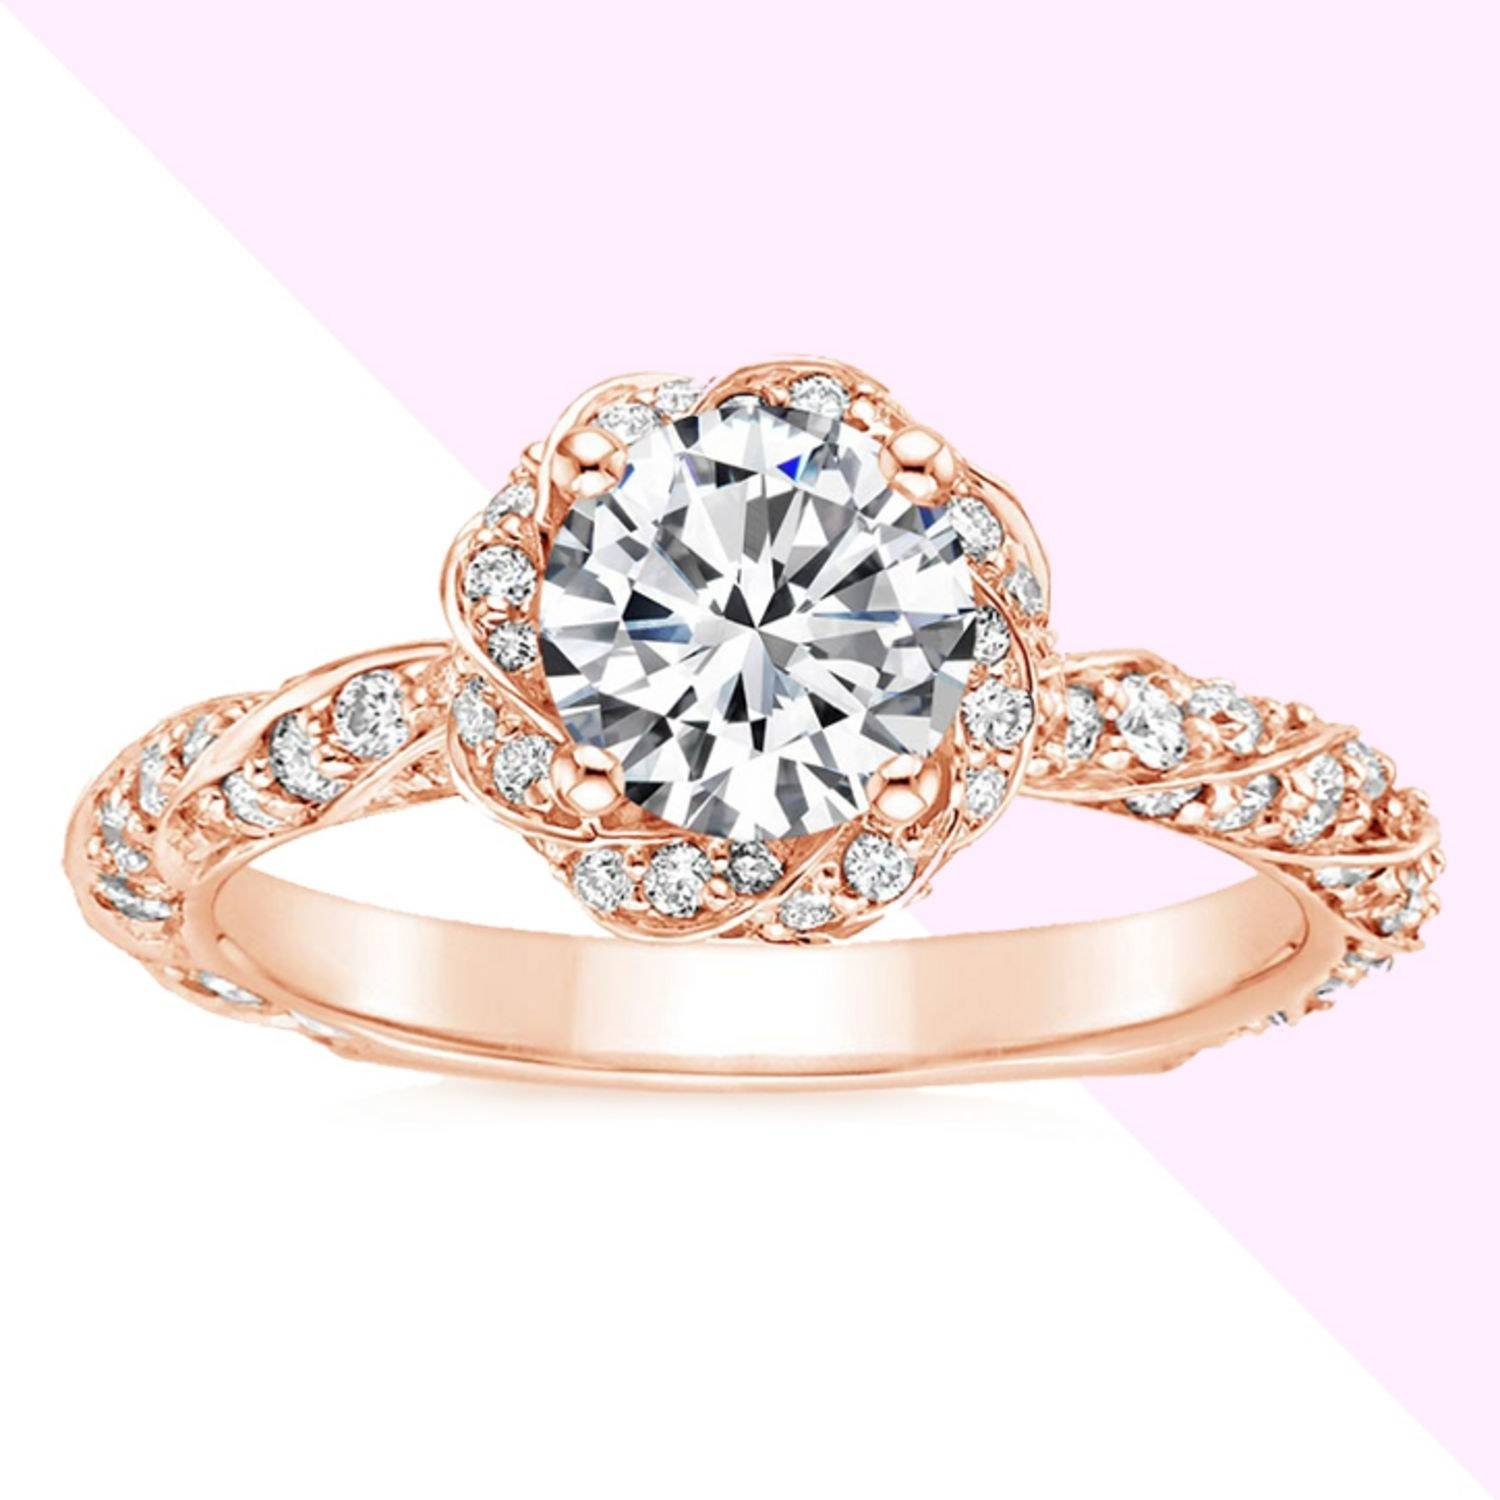 Engagement Rings: Tips On Buying Engagement Ring Bands, Affordable Regarding Wedding Rings With Engagement Rings (View 15 of 15)